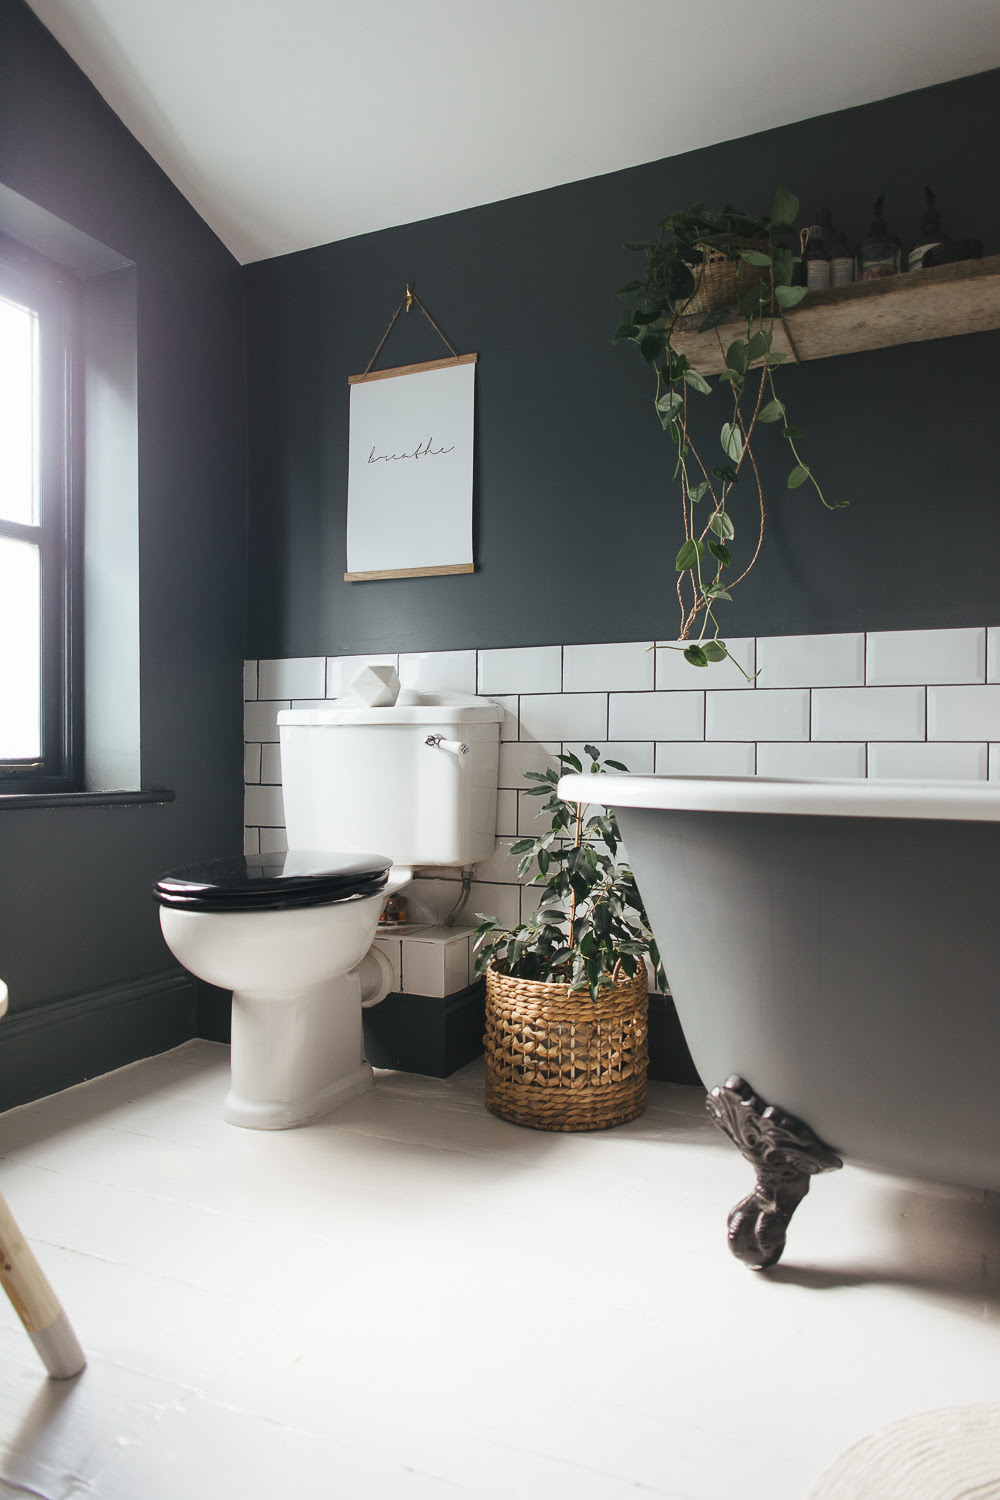 Choosing a light or dark bathroom colour scheme for a ...